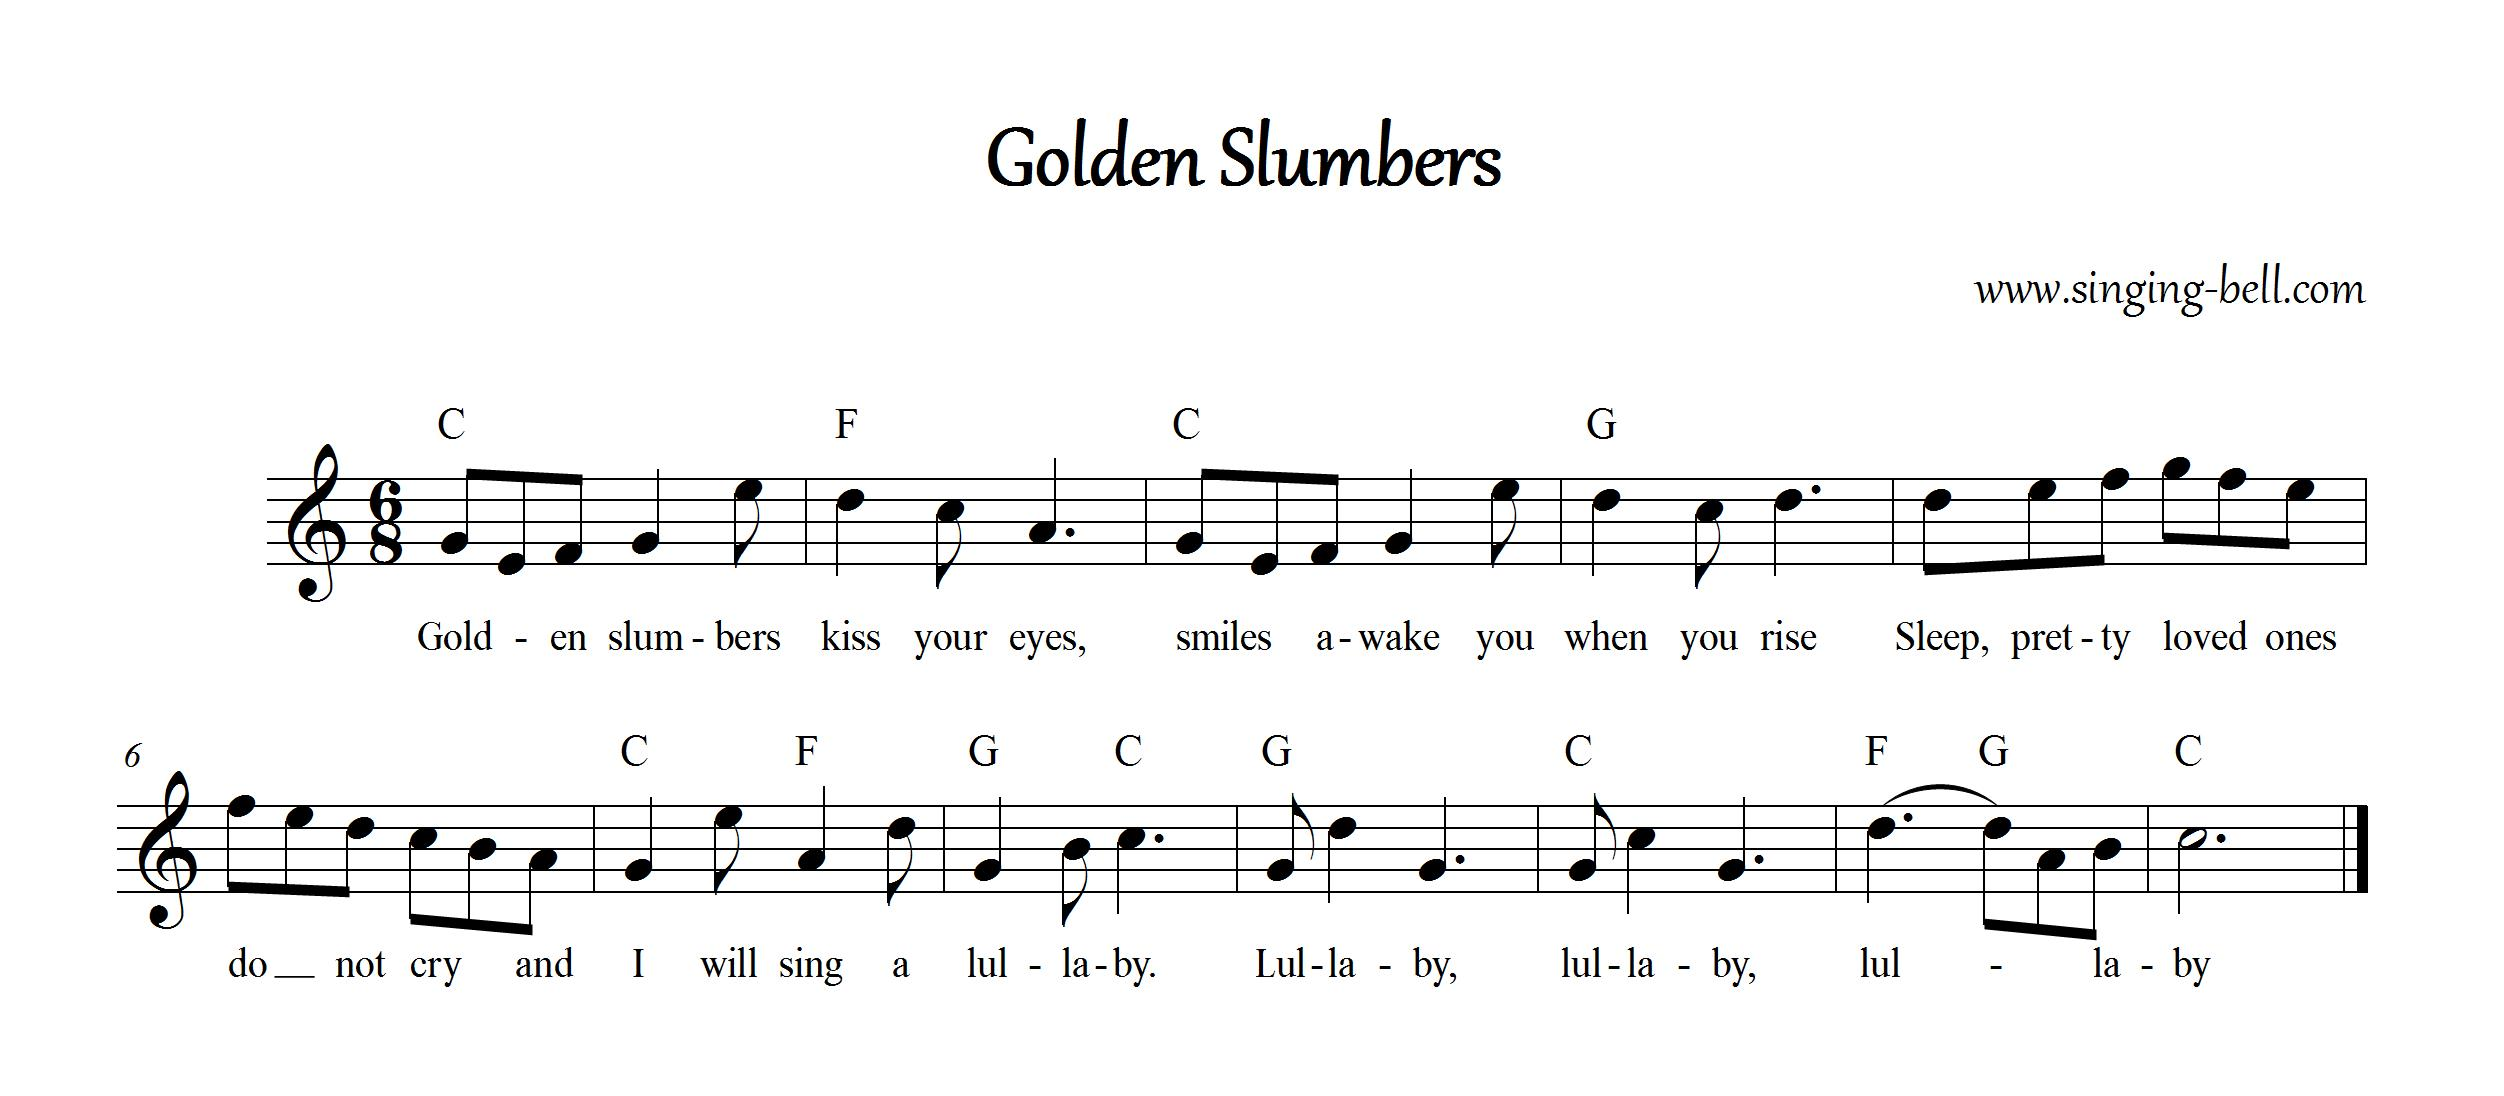 """Golden Slumbers"" Music Score with chords in F"